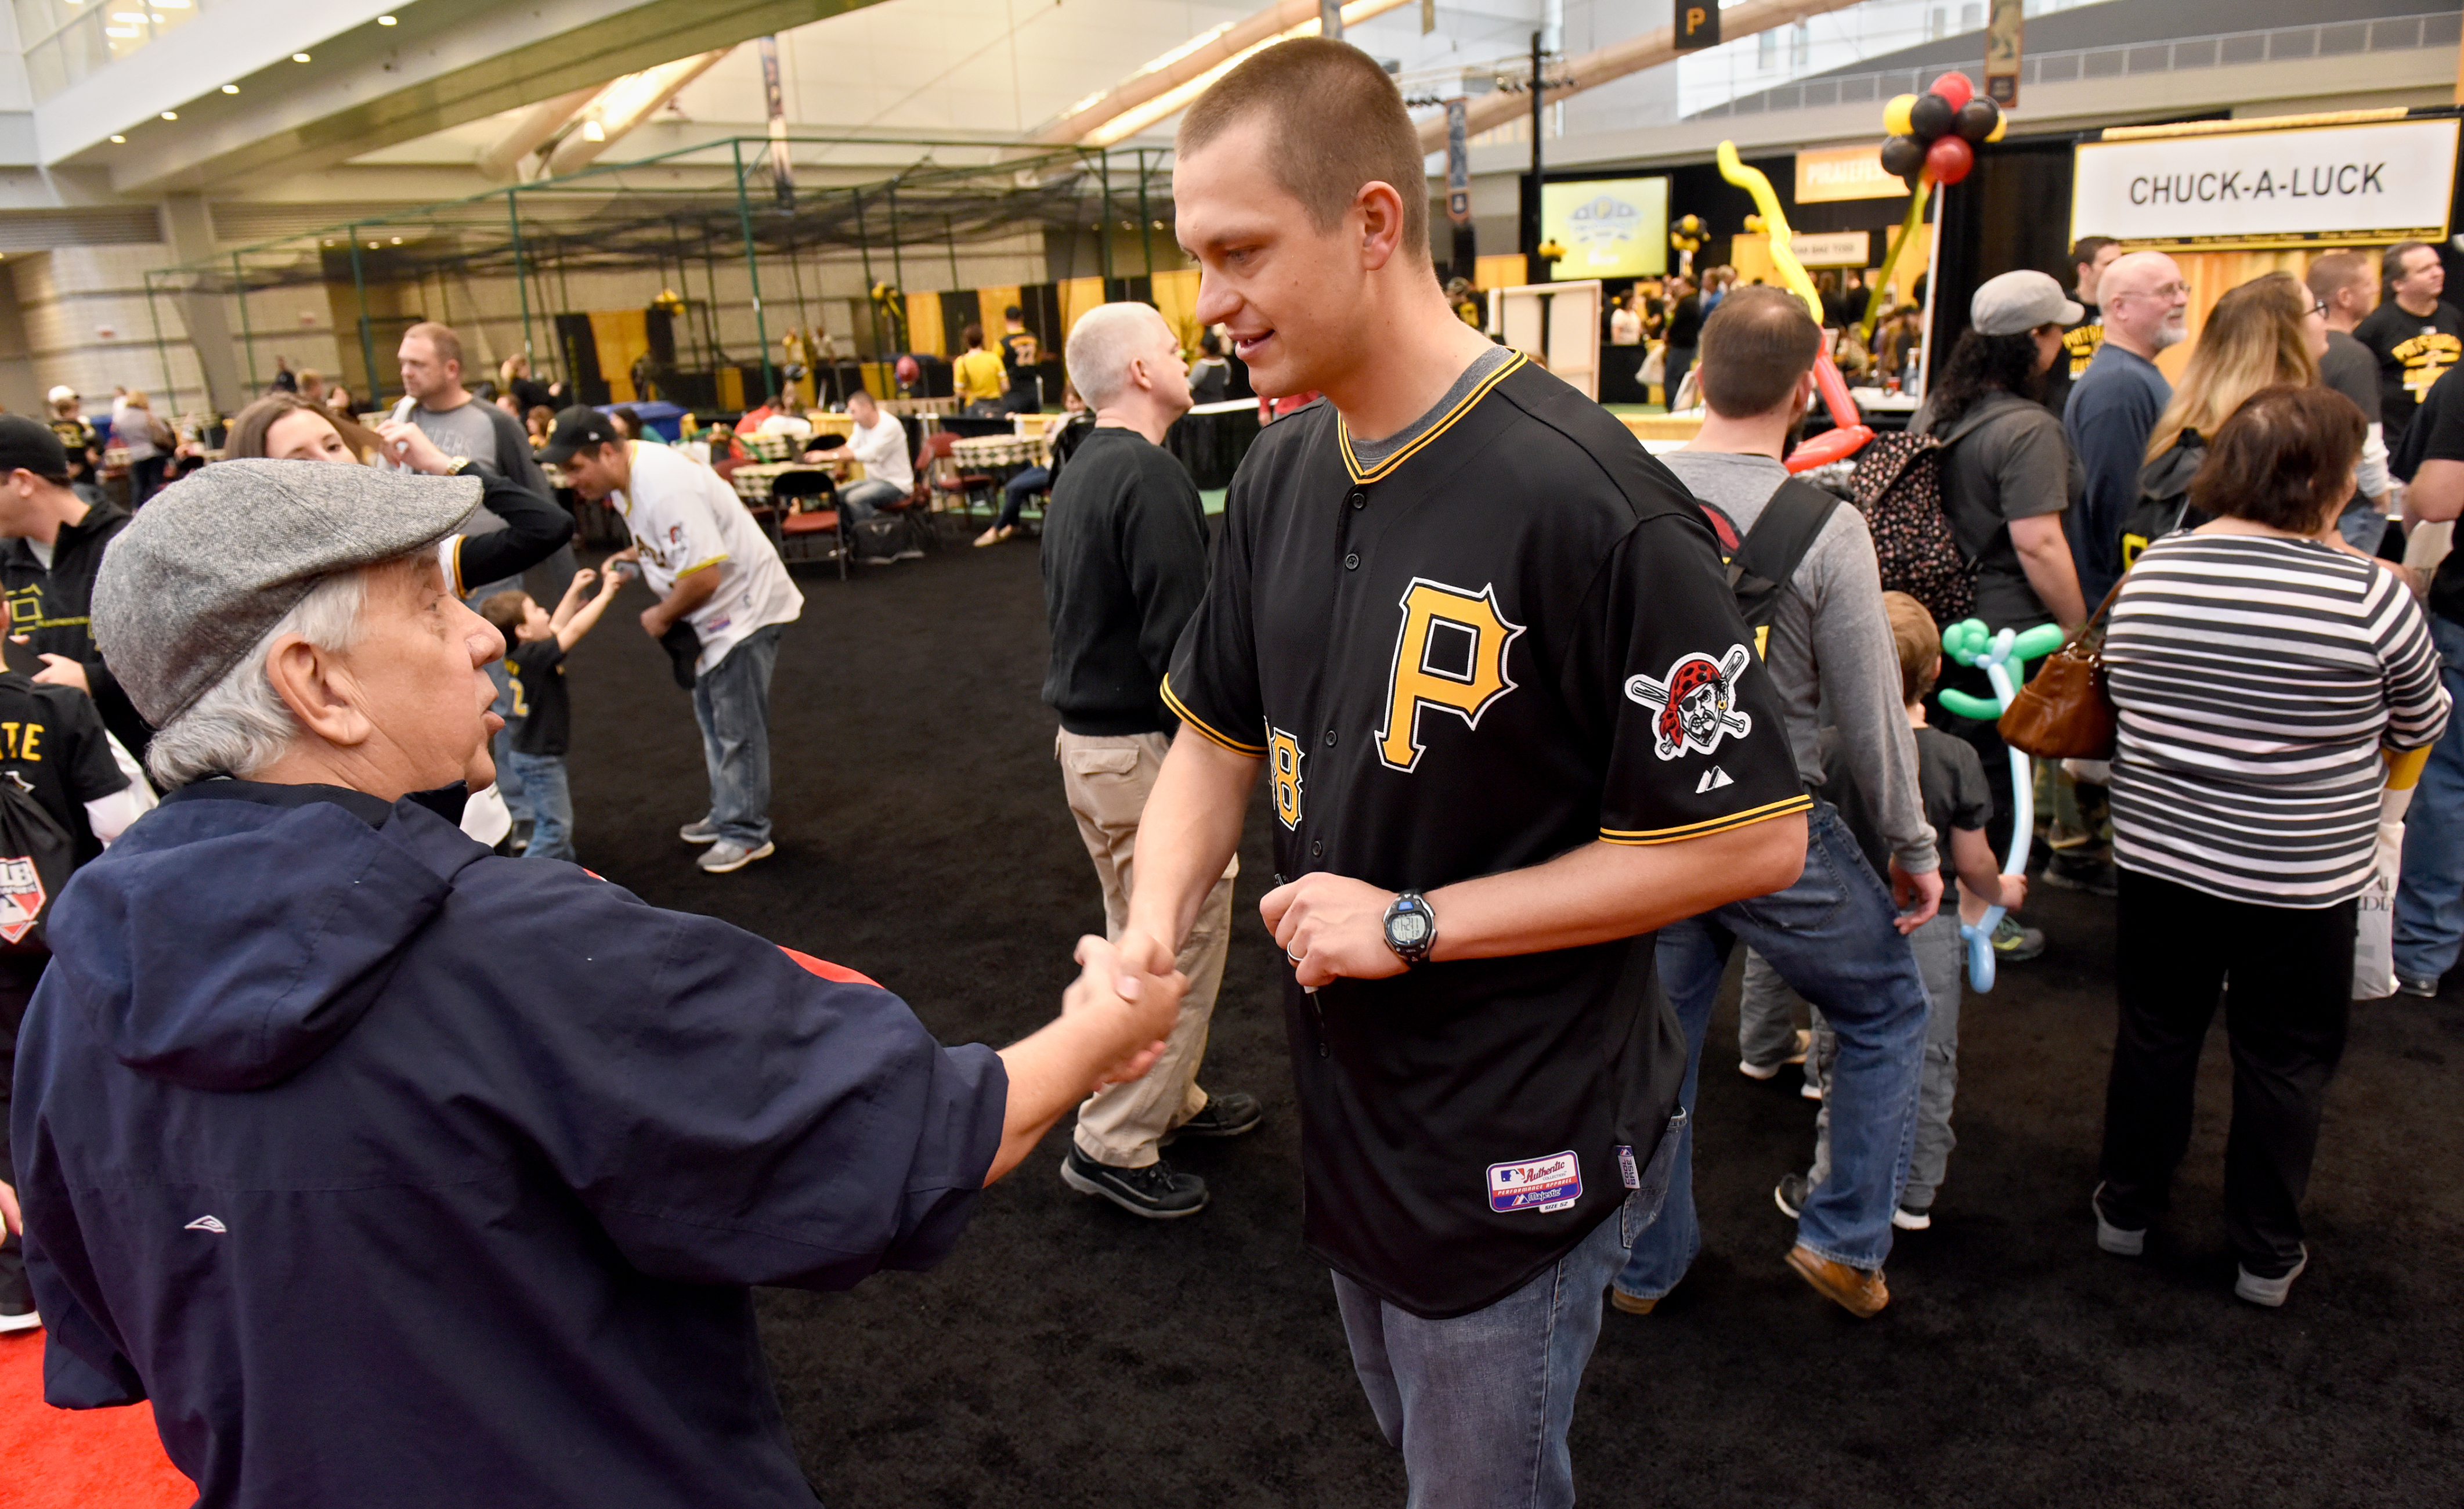 pittsburgh pirates meet and greet